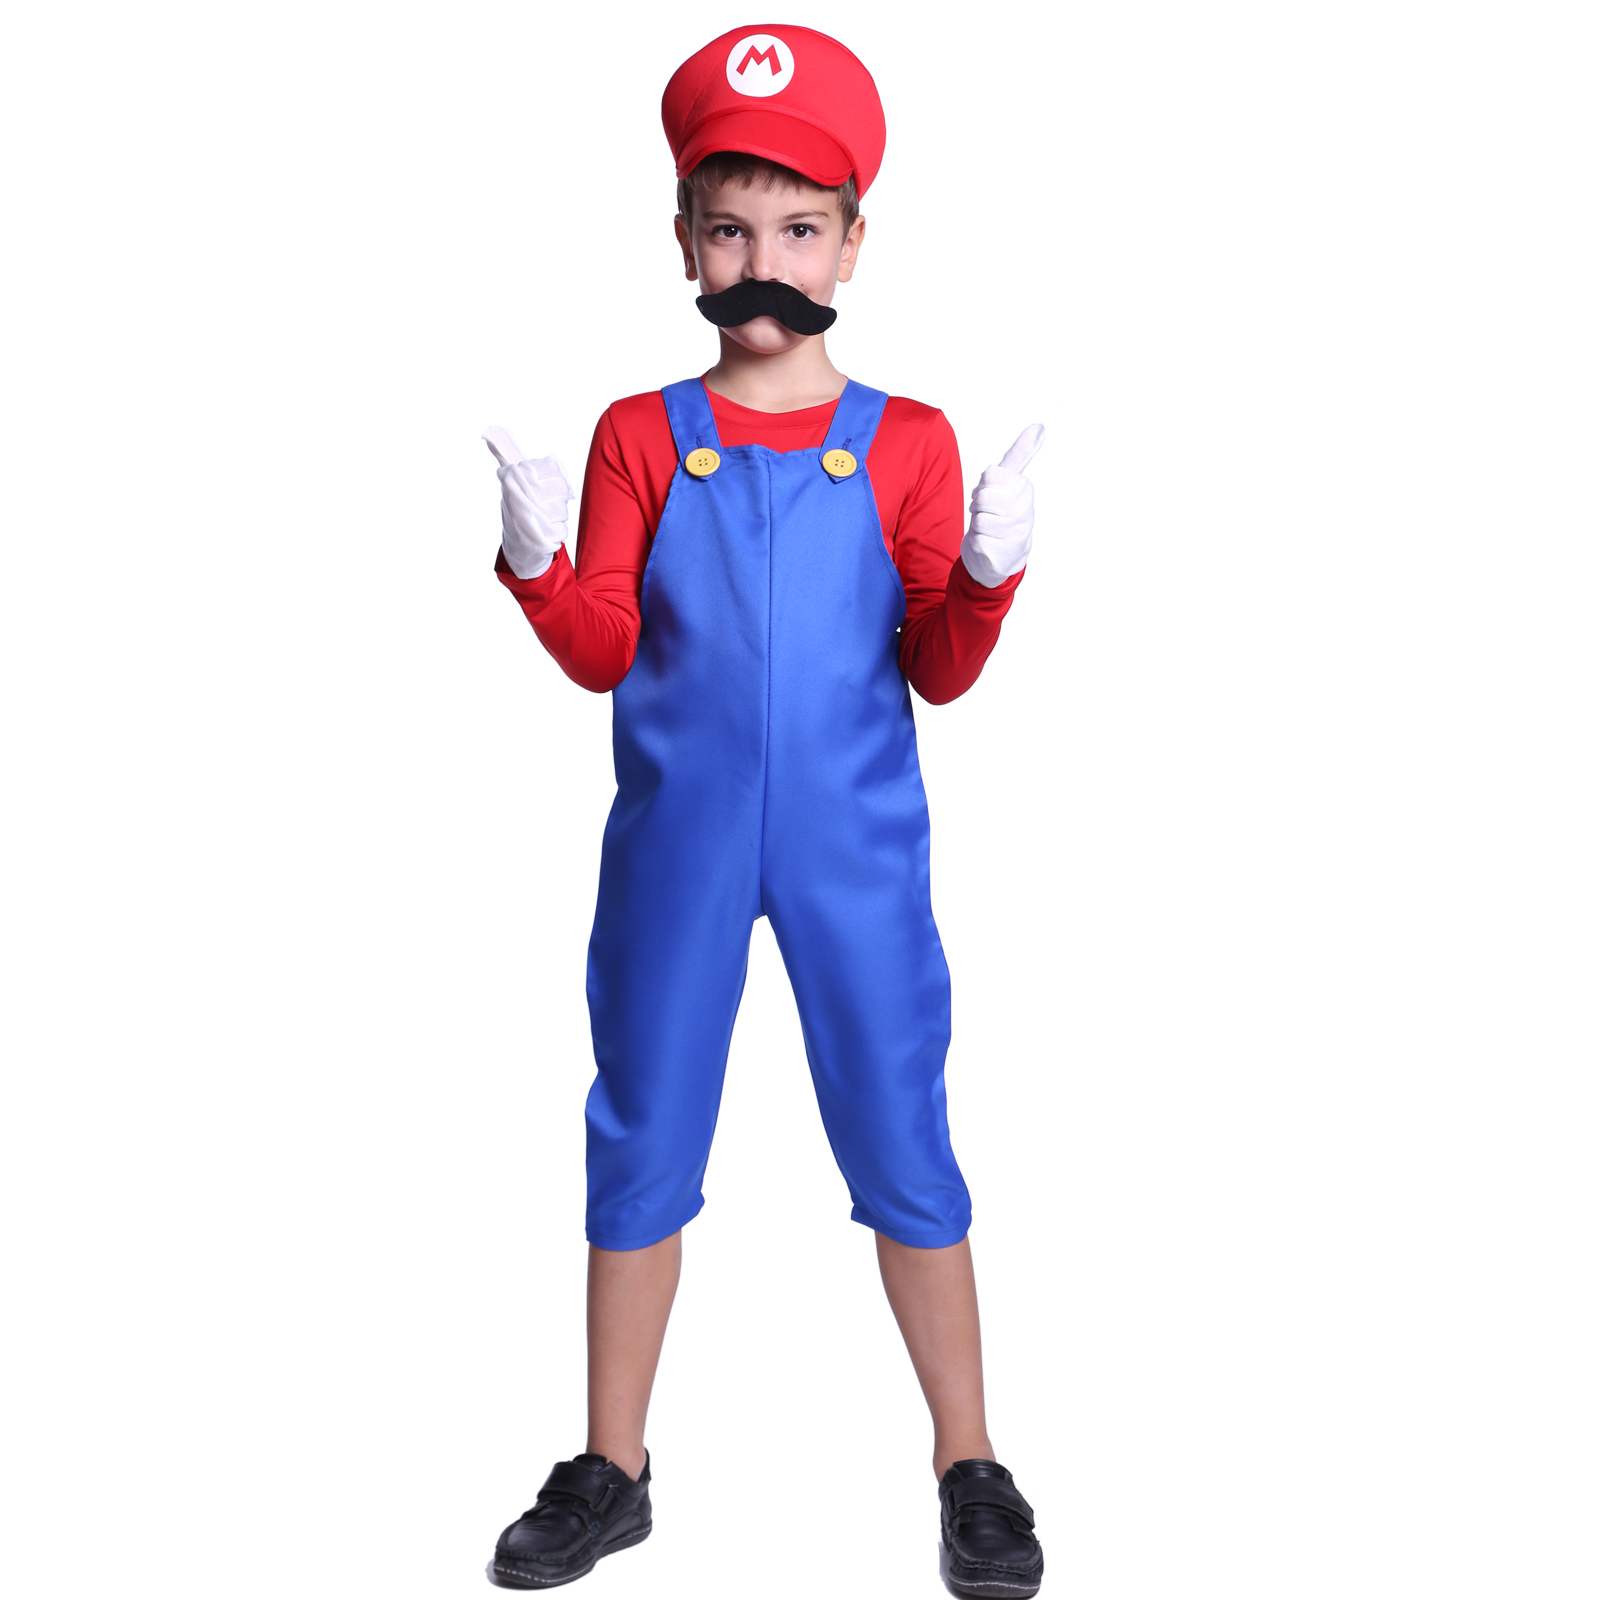 New Kids Super Mario Costume Teen Boys Clothes Fancy Dress Party Moustache Hat  sc 1 st  eBay & New Kids Super Mario Costume Teen Boys Clothes Fancy Dress Party ...